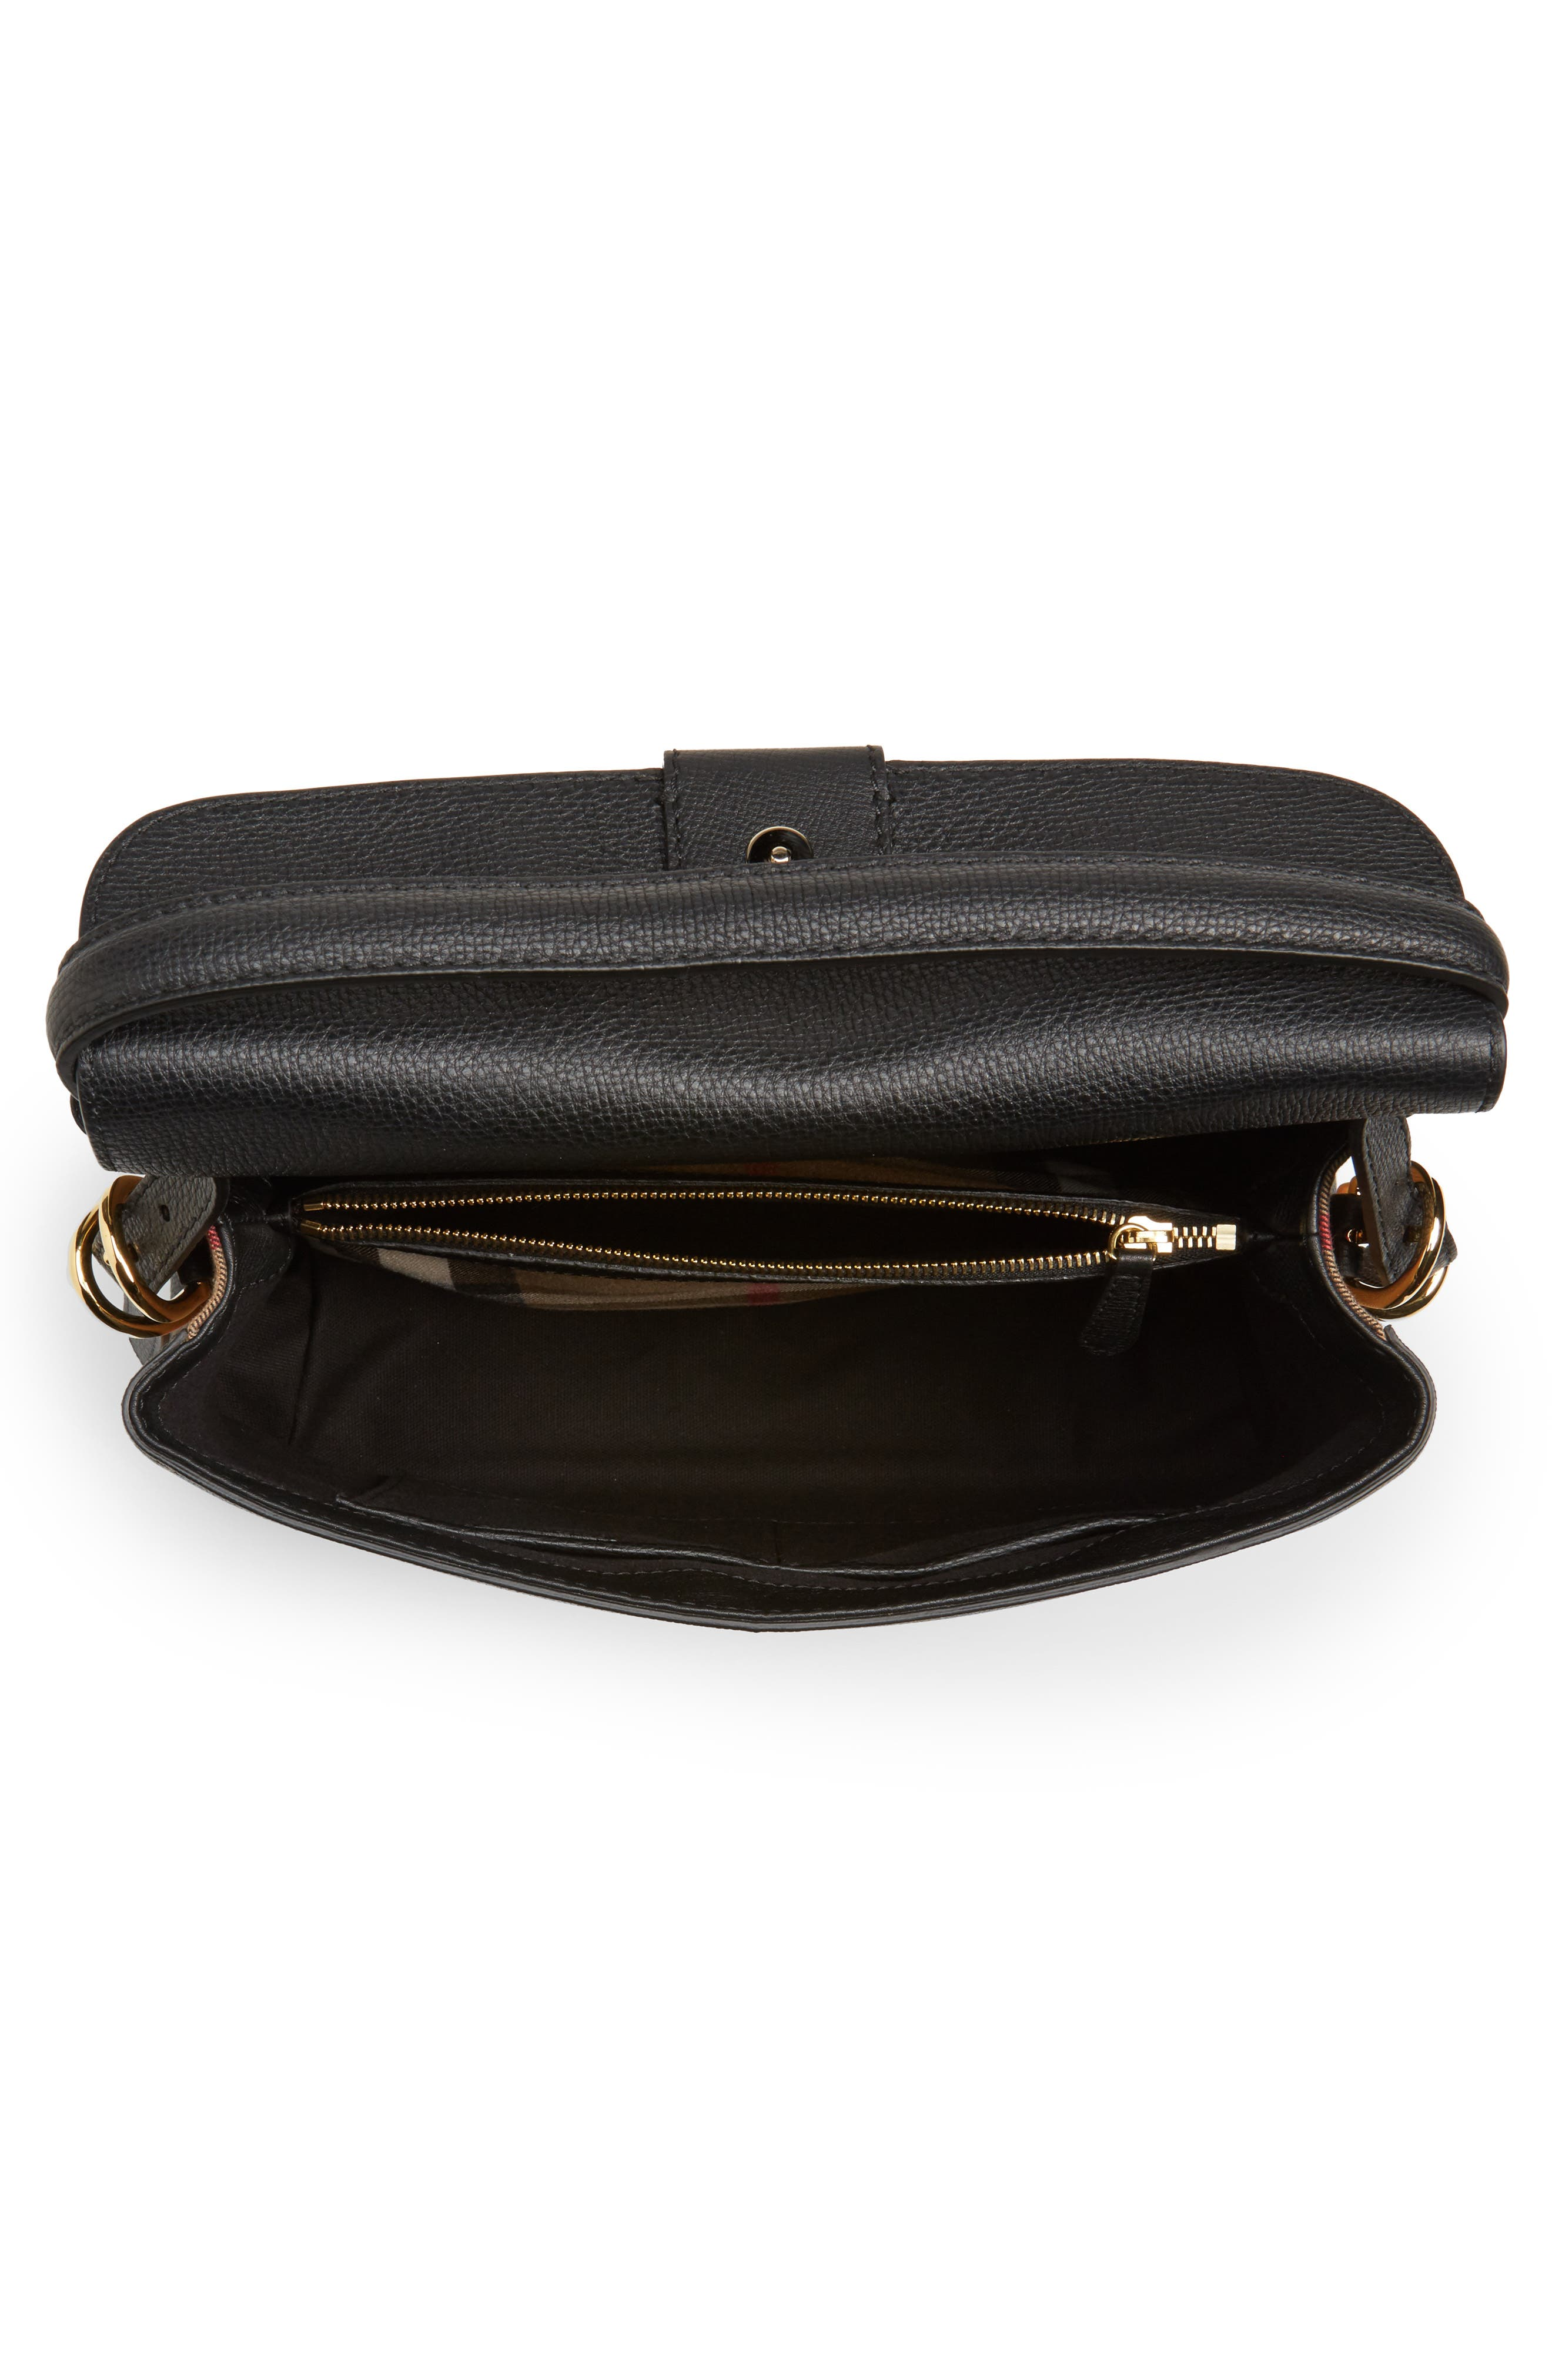 Medium Camberley Leather & House Check Top Handle Satchel,                             Alternate thumbnail 4, color,                             001